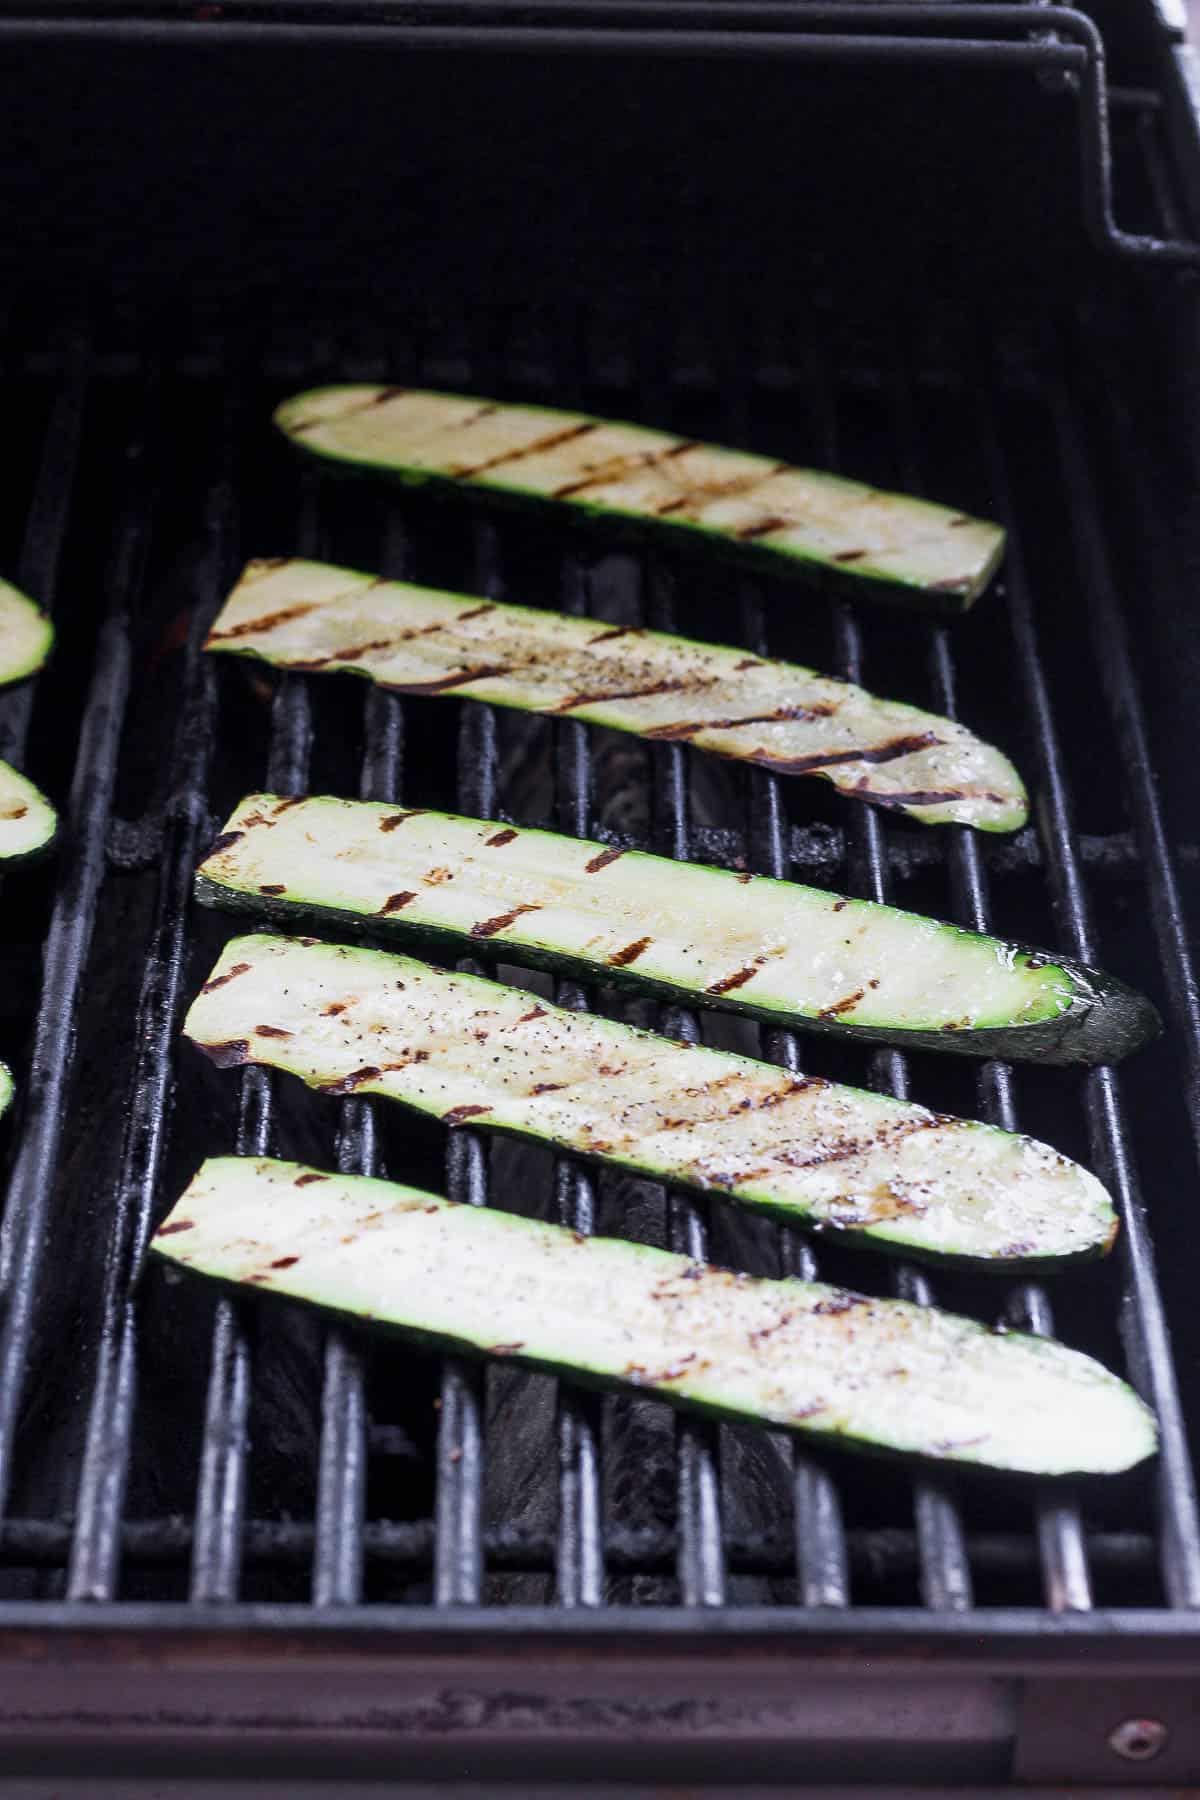 Grilled zucchini slices on outdoor grill